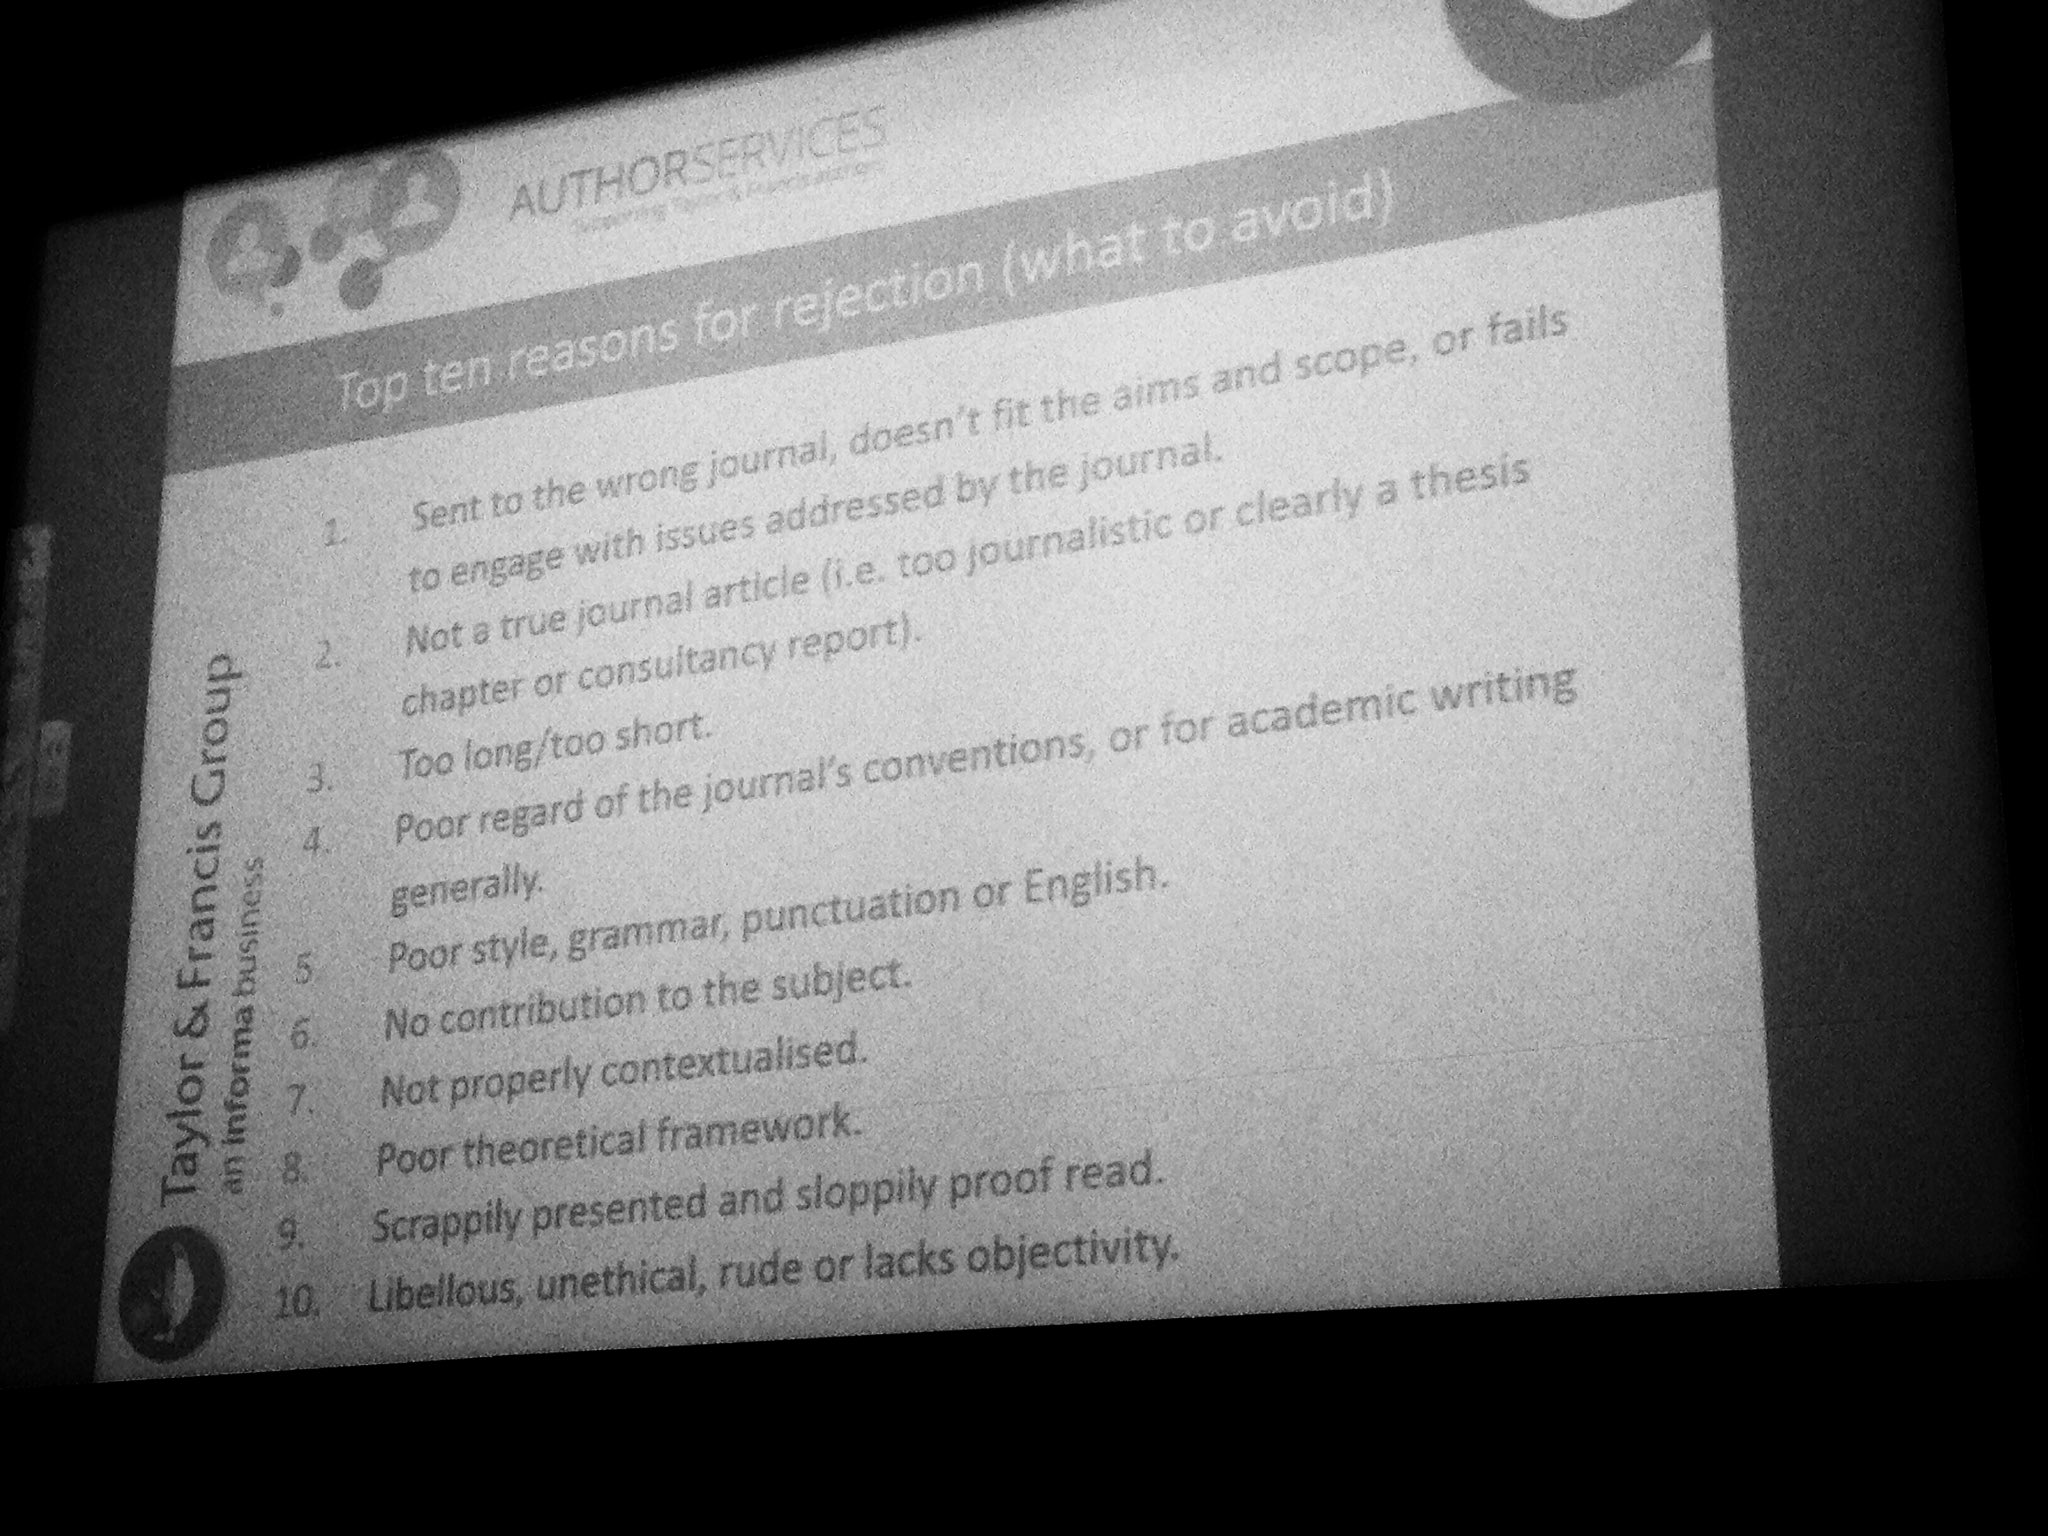 Top ten reasons for journal article rejection... Jacquelyn @Routledge_Crim @crim_editor @BSCPG1 #BSCConf16 https://t.co/BEwZncMlj7